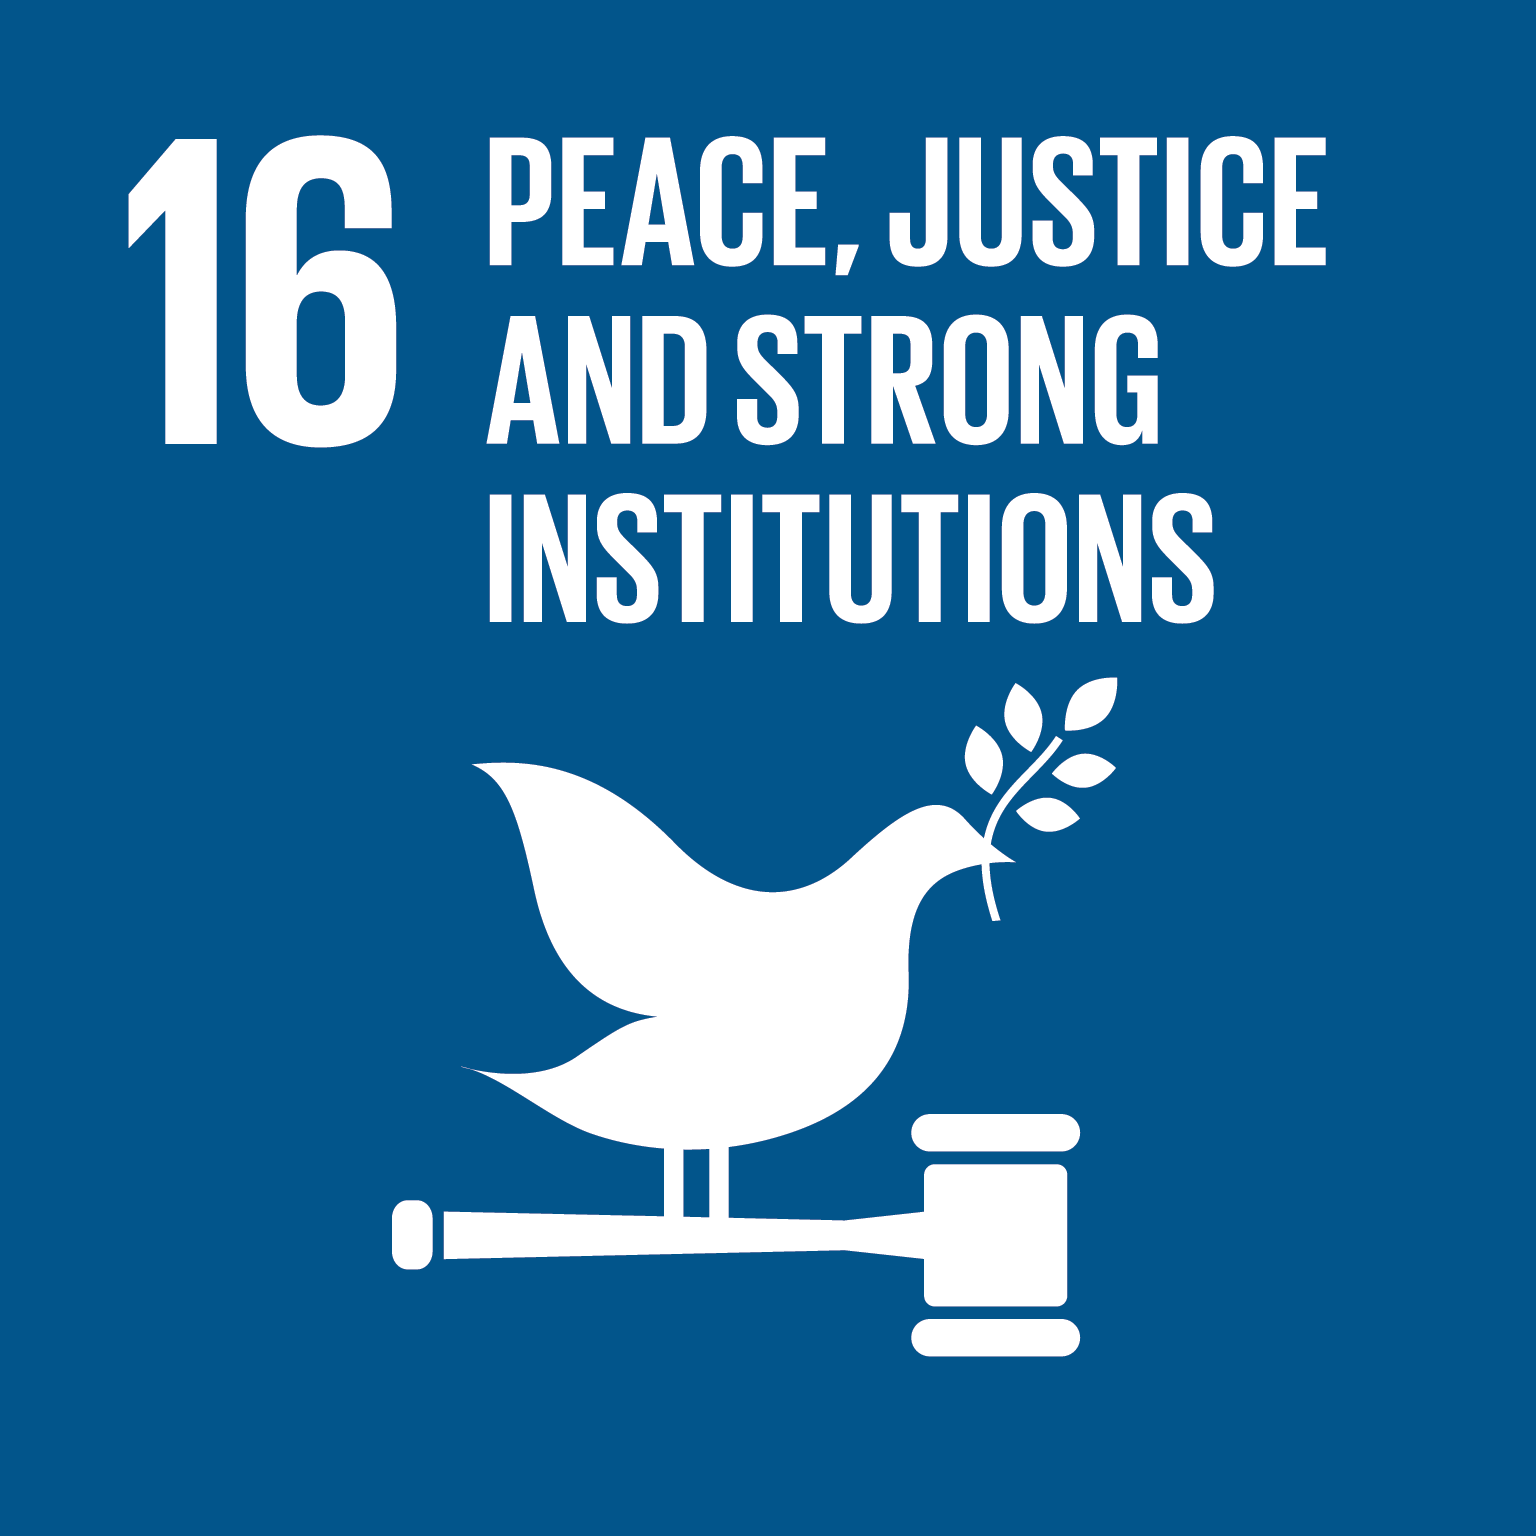 16 Peace, Justice and Strong Institutions